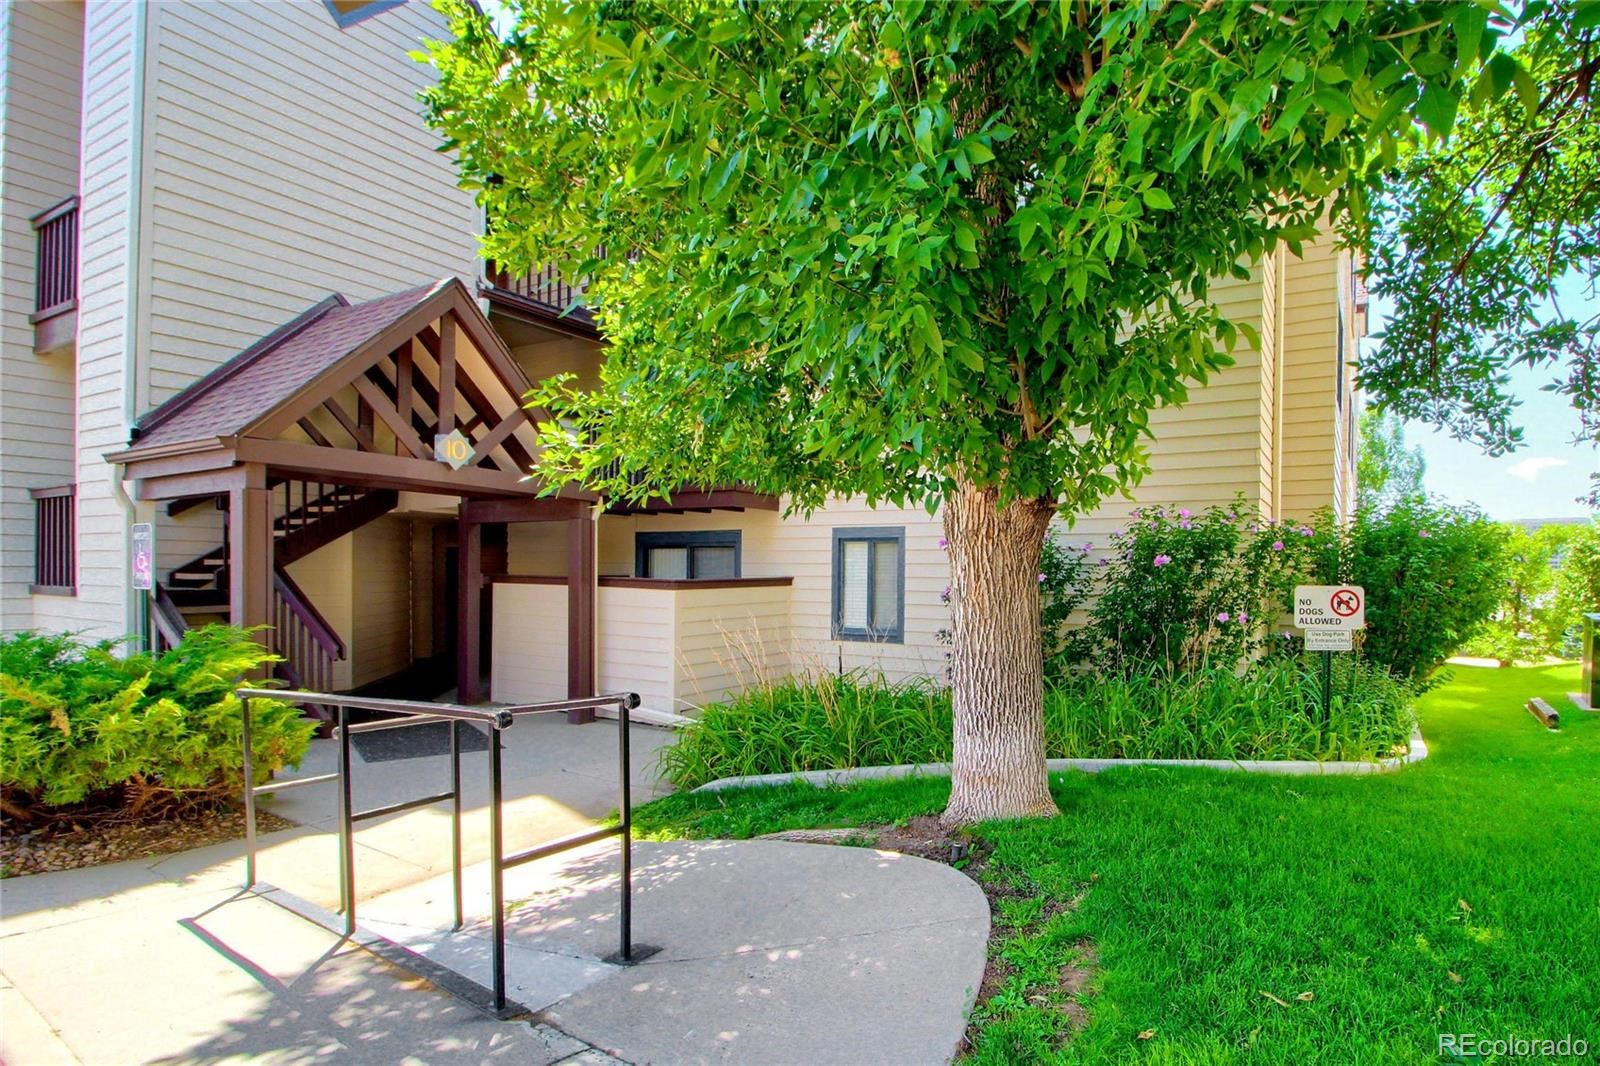 MLS# 5763768 - 4 - 6380 S Boston Street #303, Greenwood Village, CO 80111